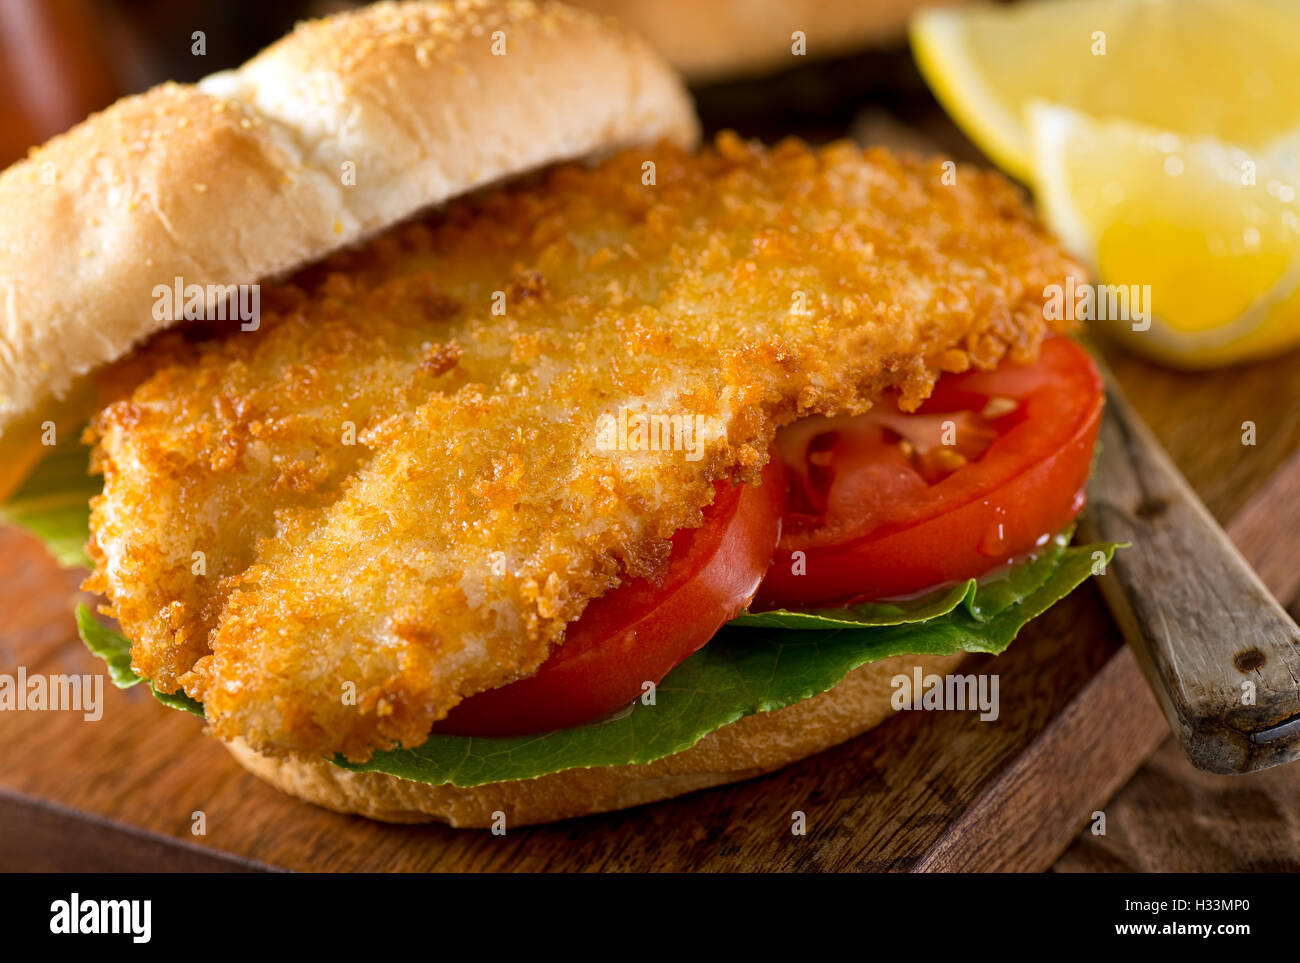 A delicious homemade fish burger with lettuce and tomato on a bun. - Stock Image